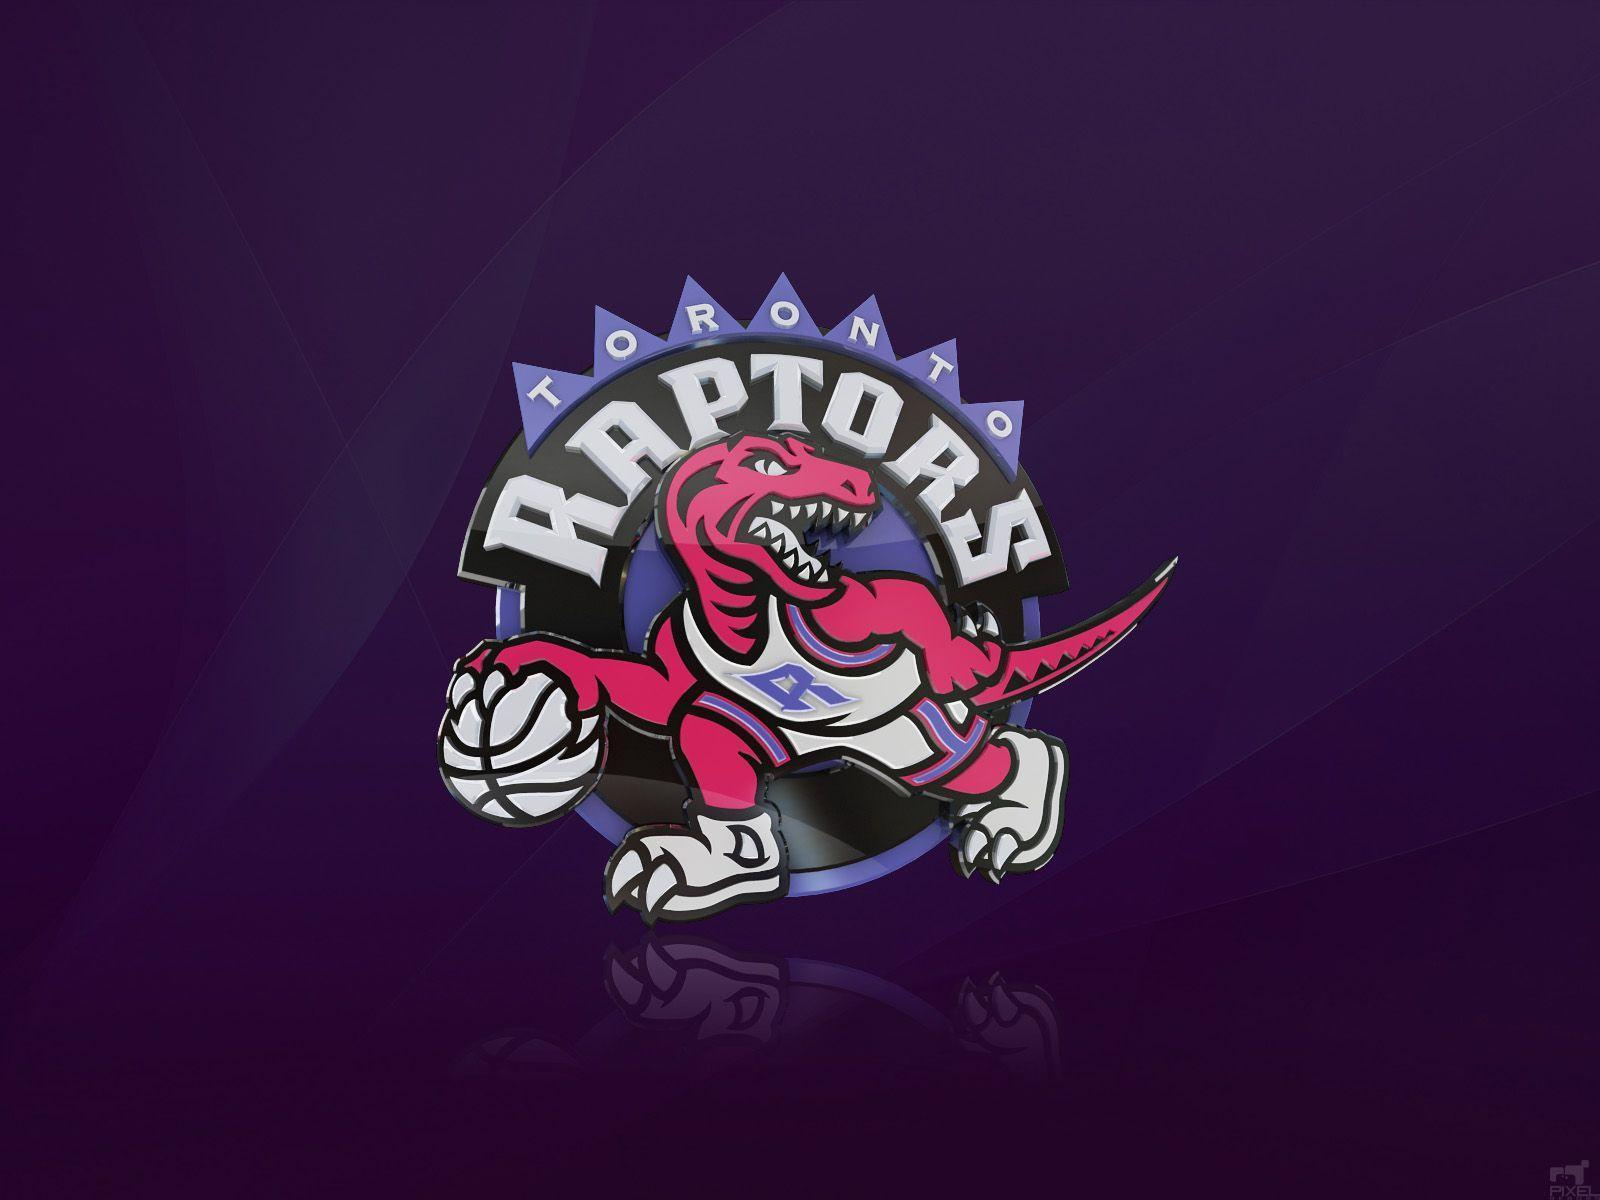 20 best images about NBA Wallpaper on Pinterest | Logos, New york ...